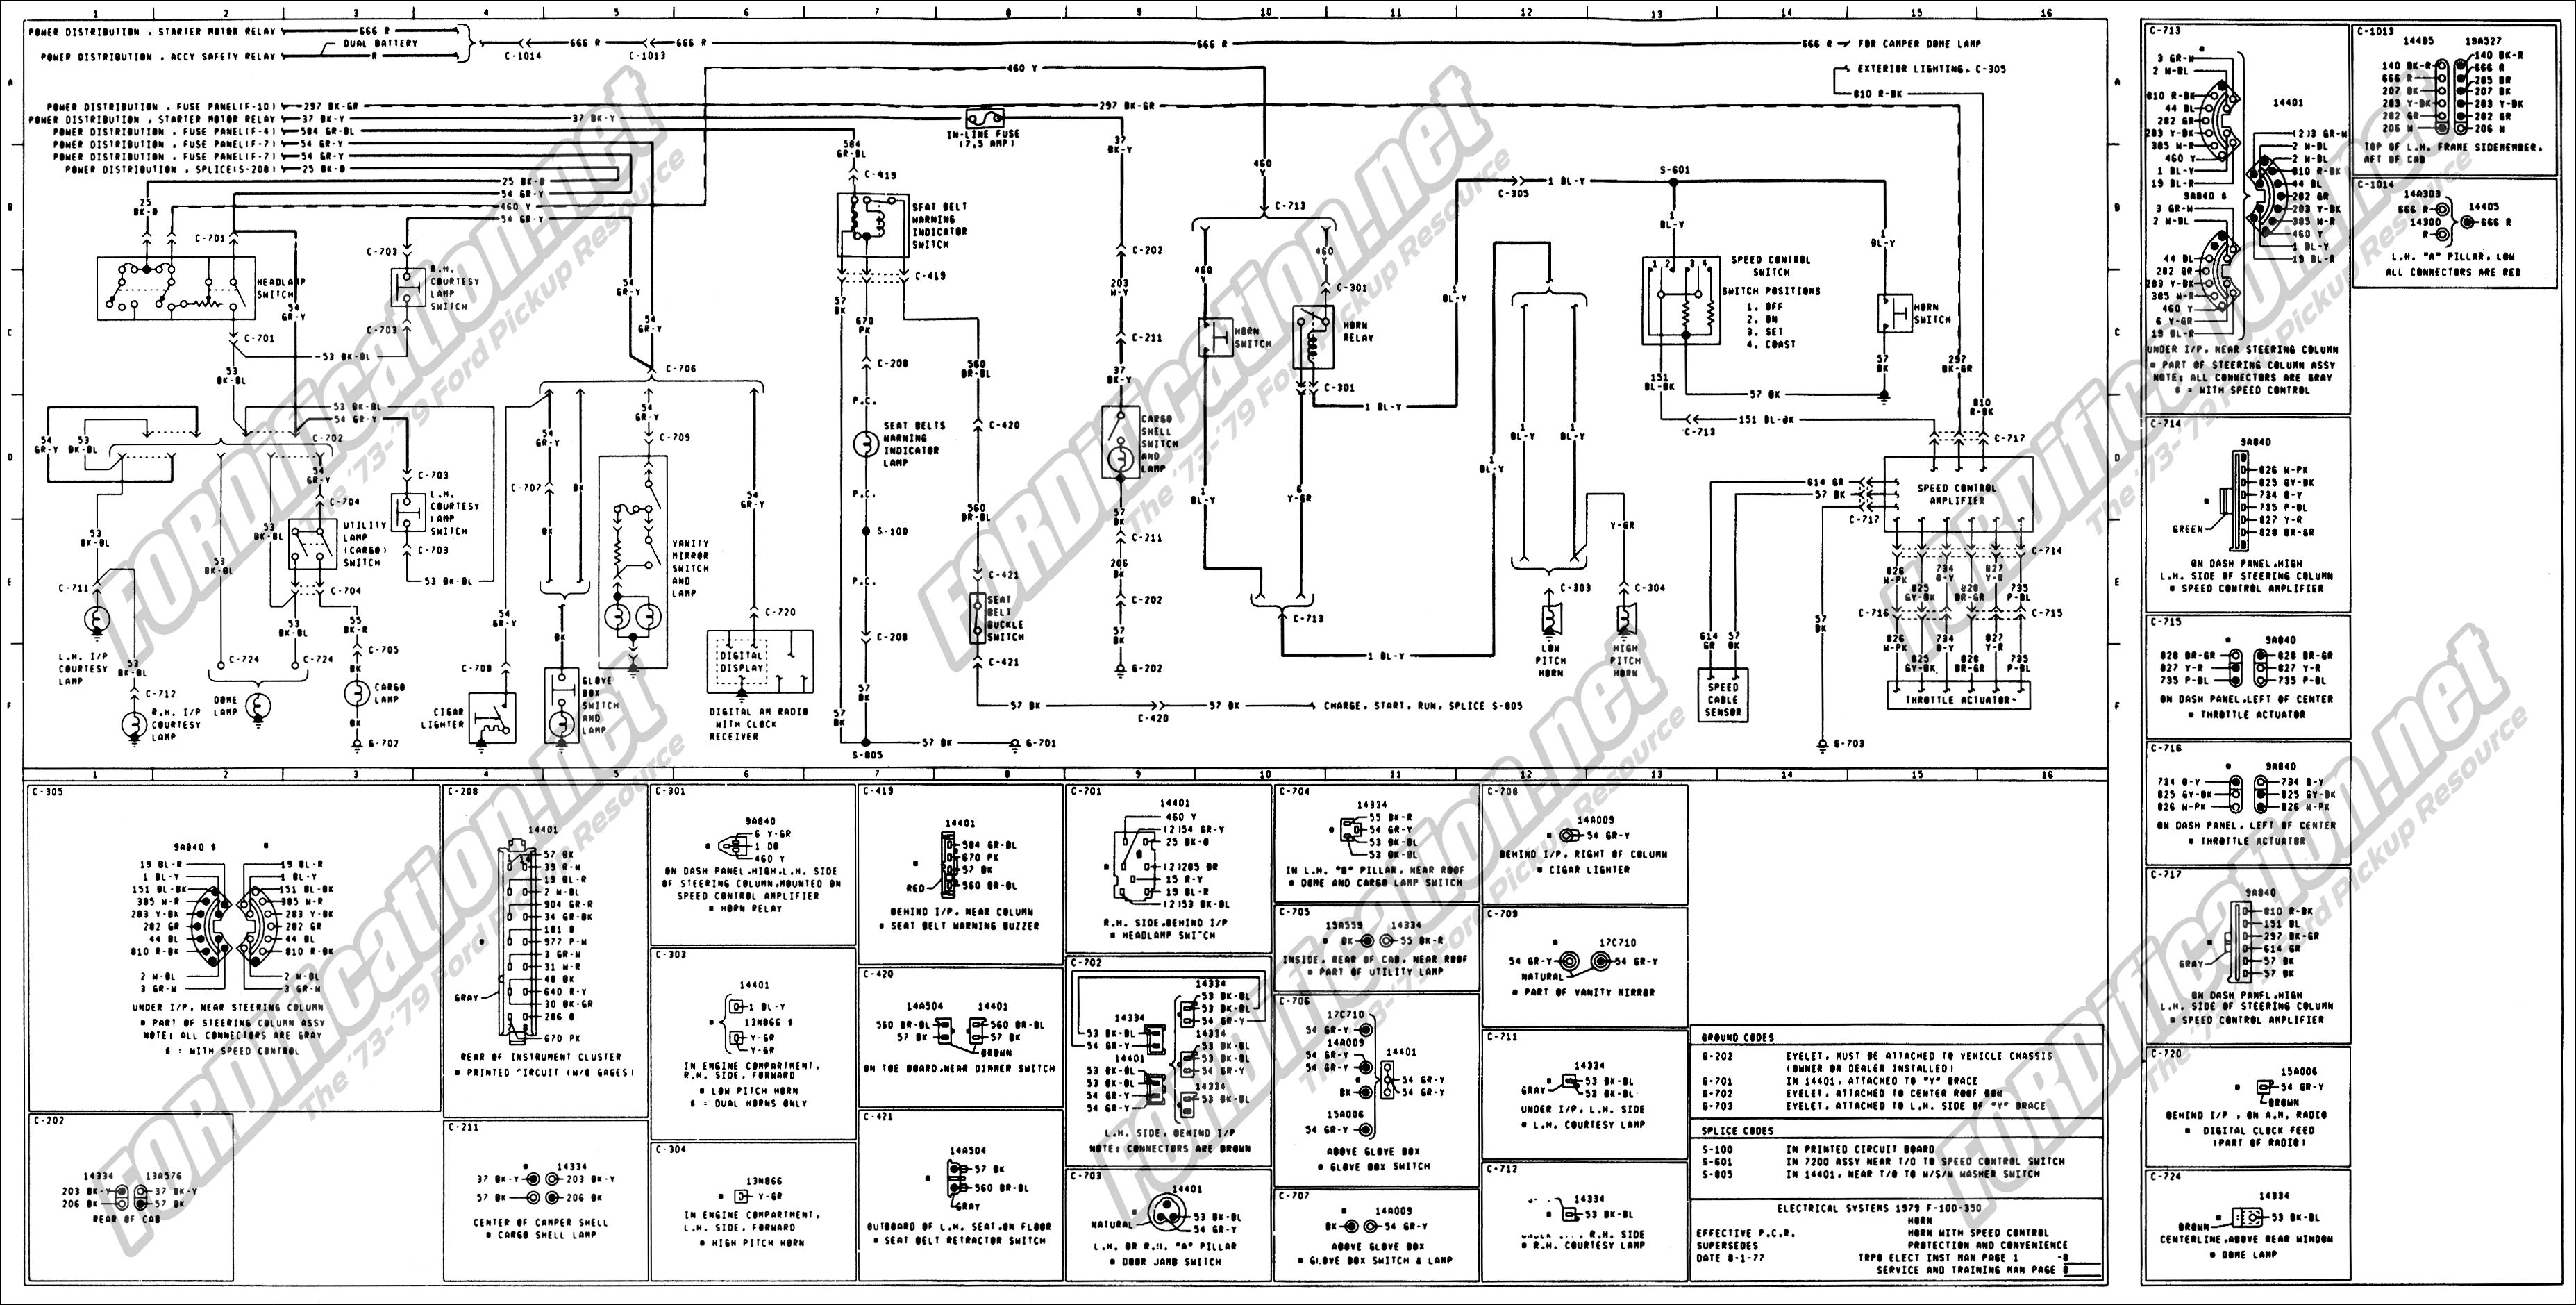 wiring_79master_8of9 1973 1979 ford truck wiring diagrams & schematics fordification net 1970 ford wiring diagram at soozxer.org